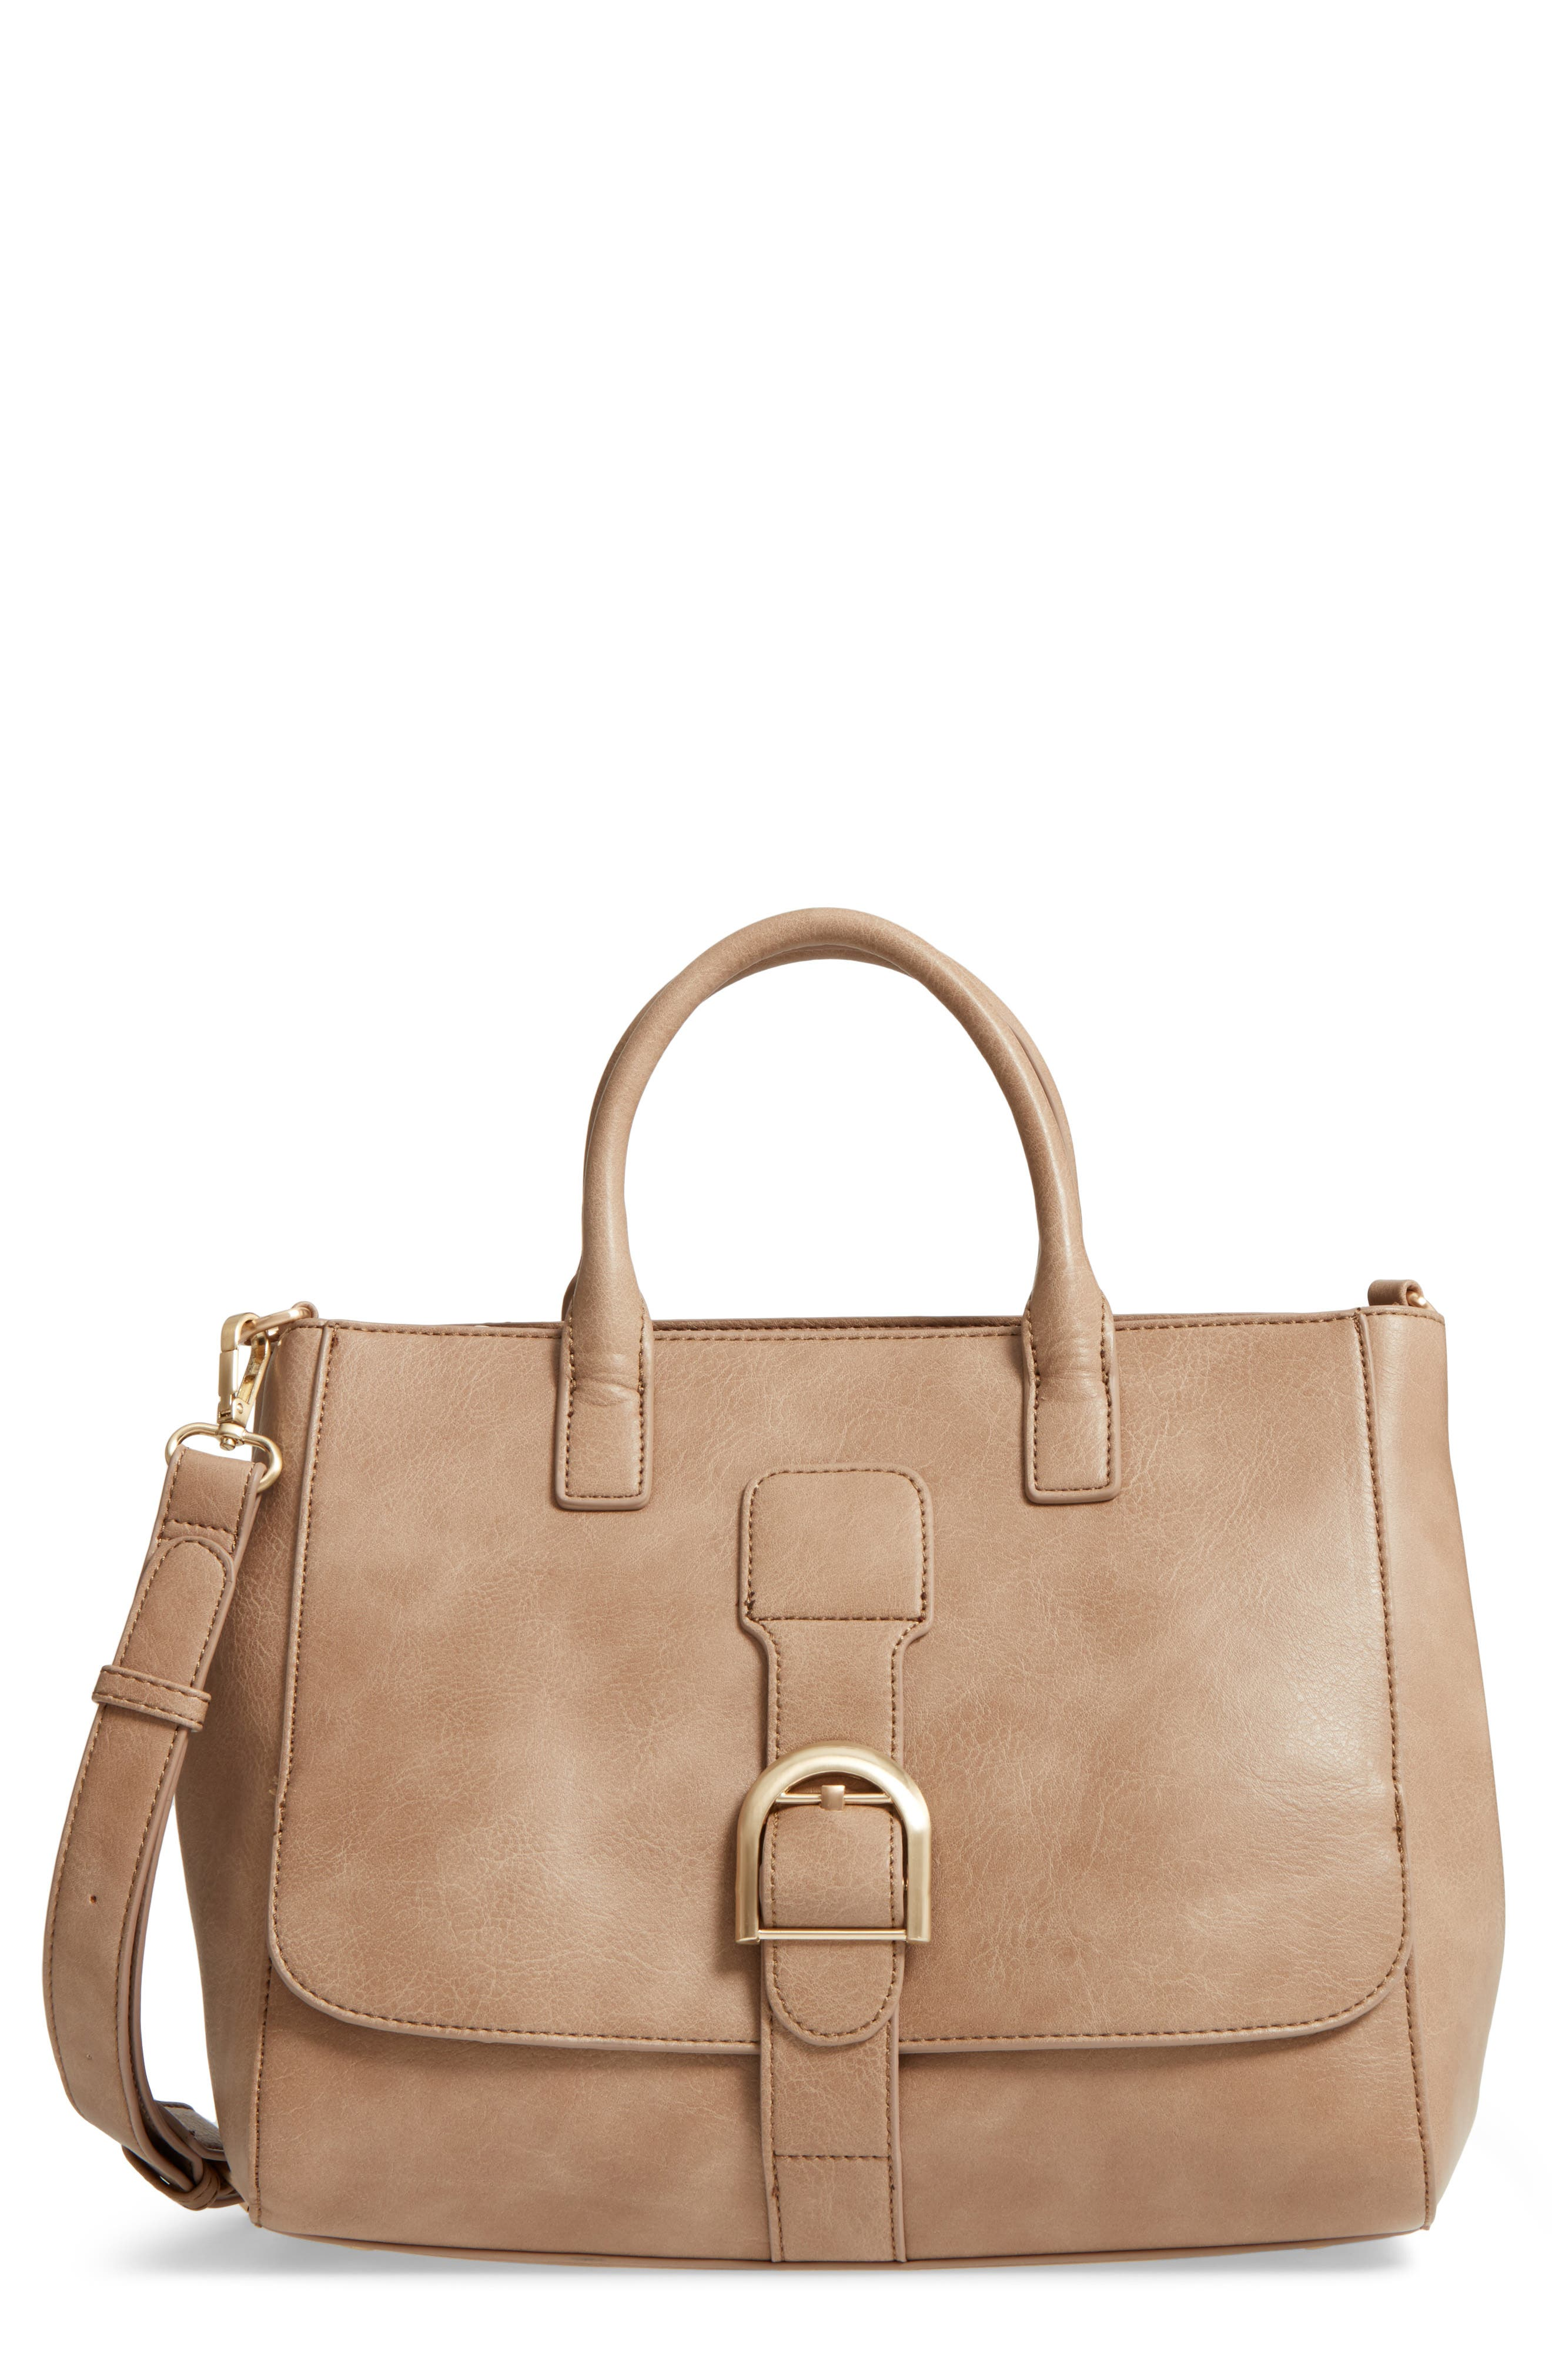 Main Image - Sole Society Zola Faux Leather Satchel